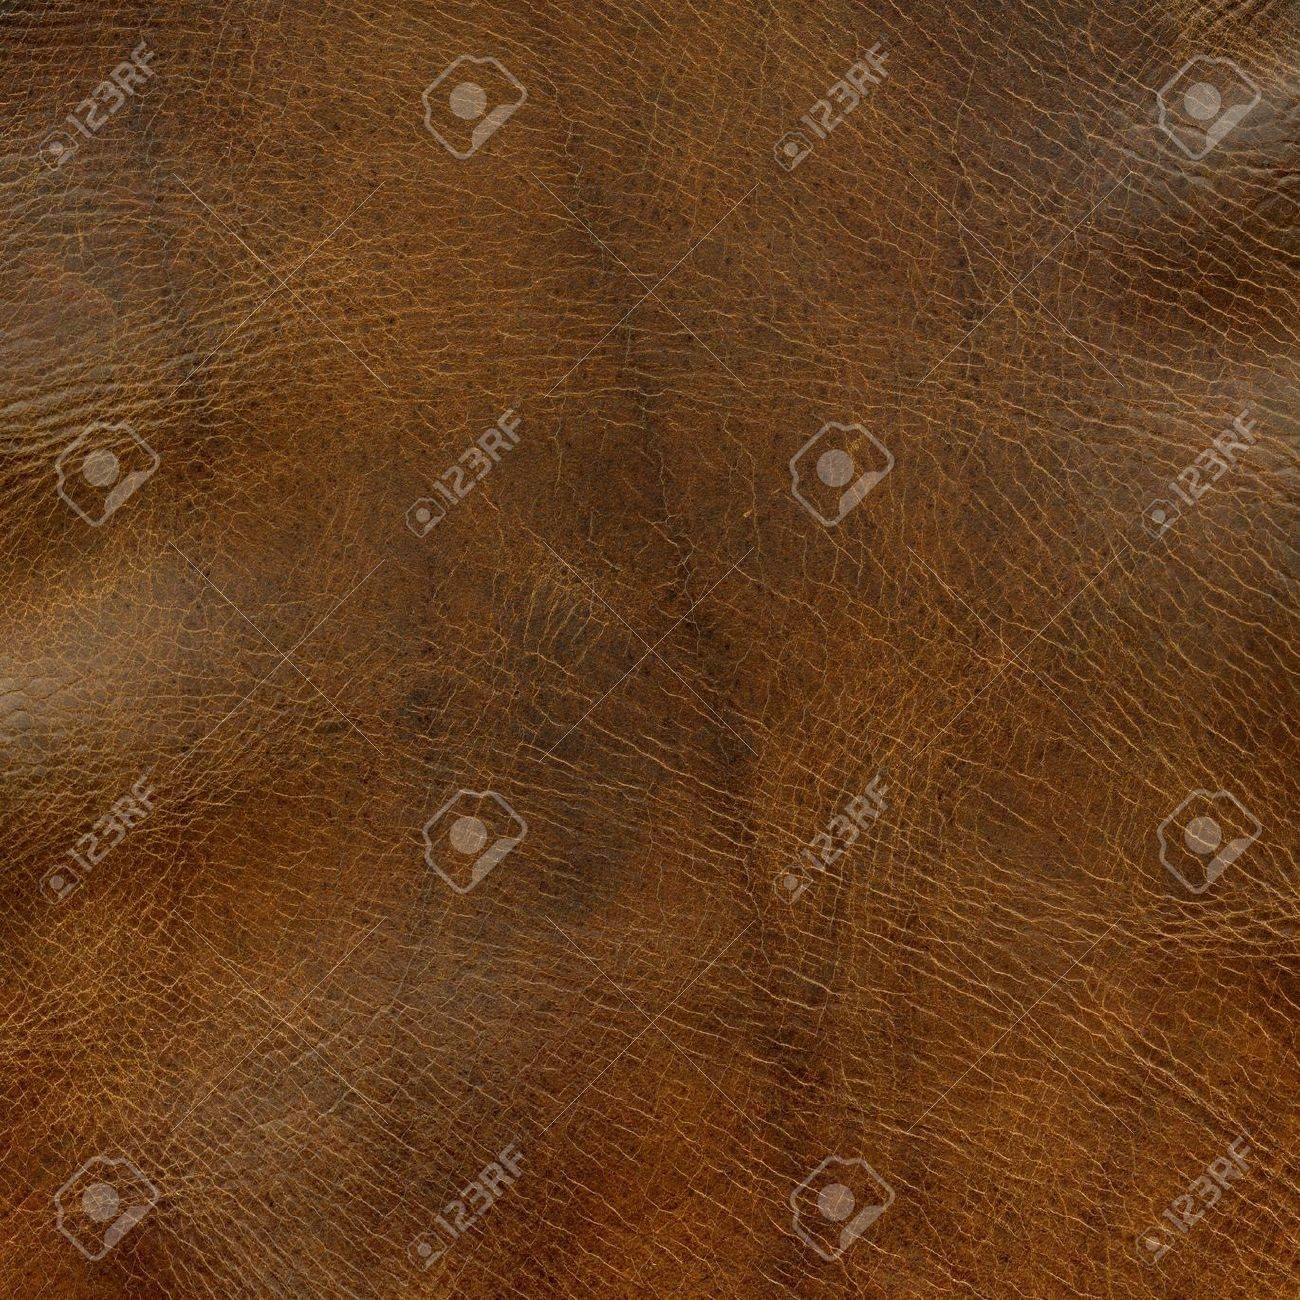 distressed brown leather background with some wrinkles - a top of old horse saddle Stock Photo - 5200526